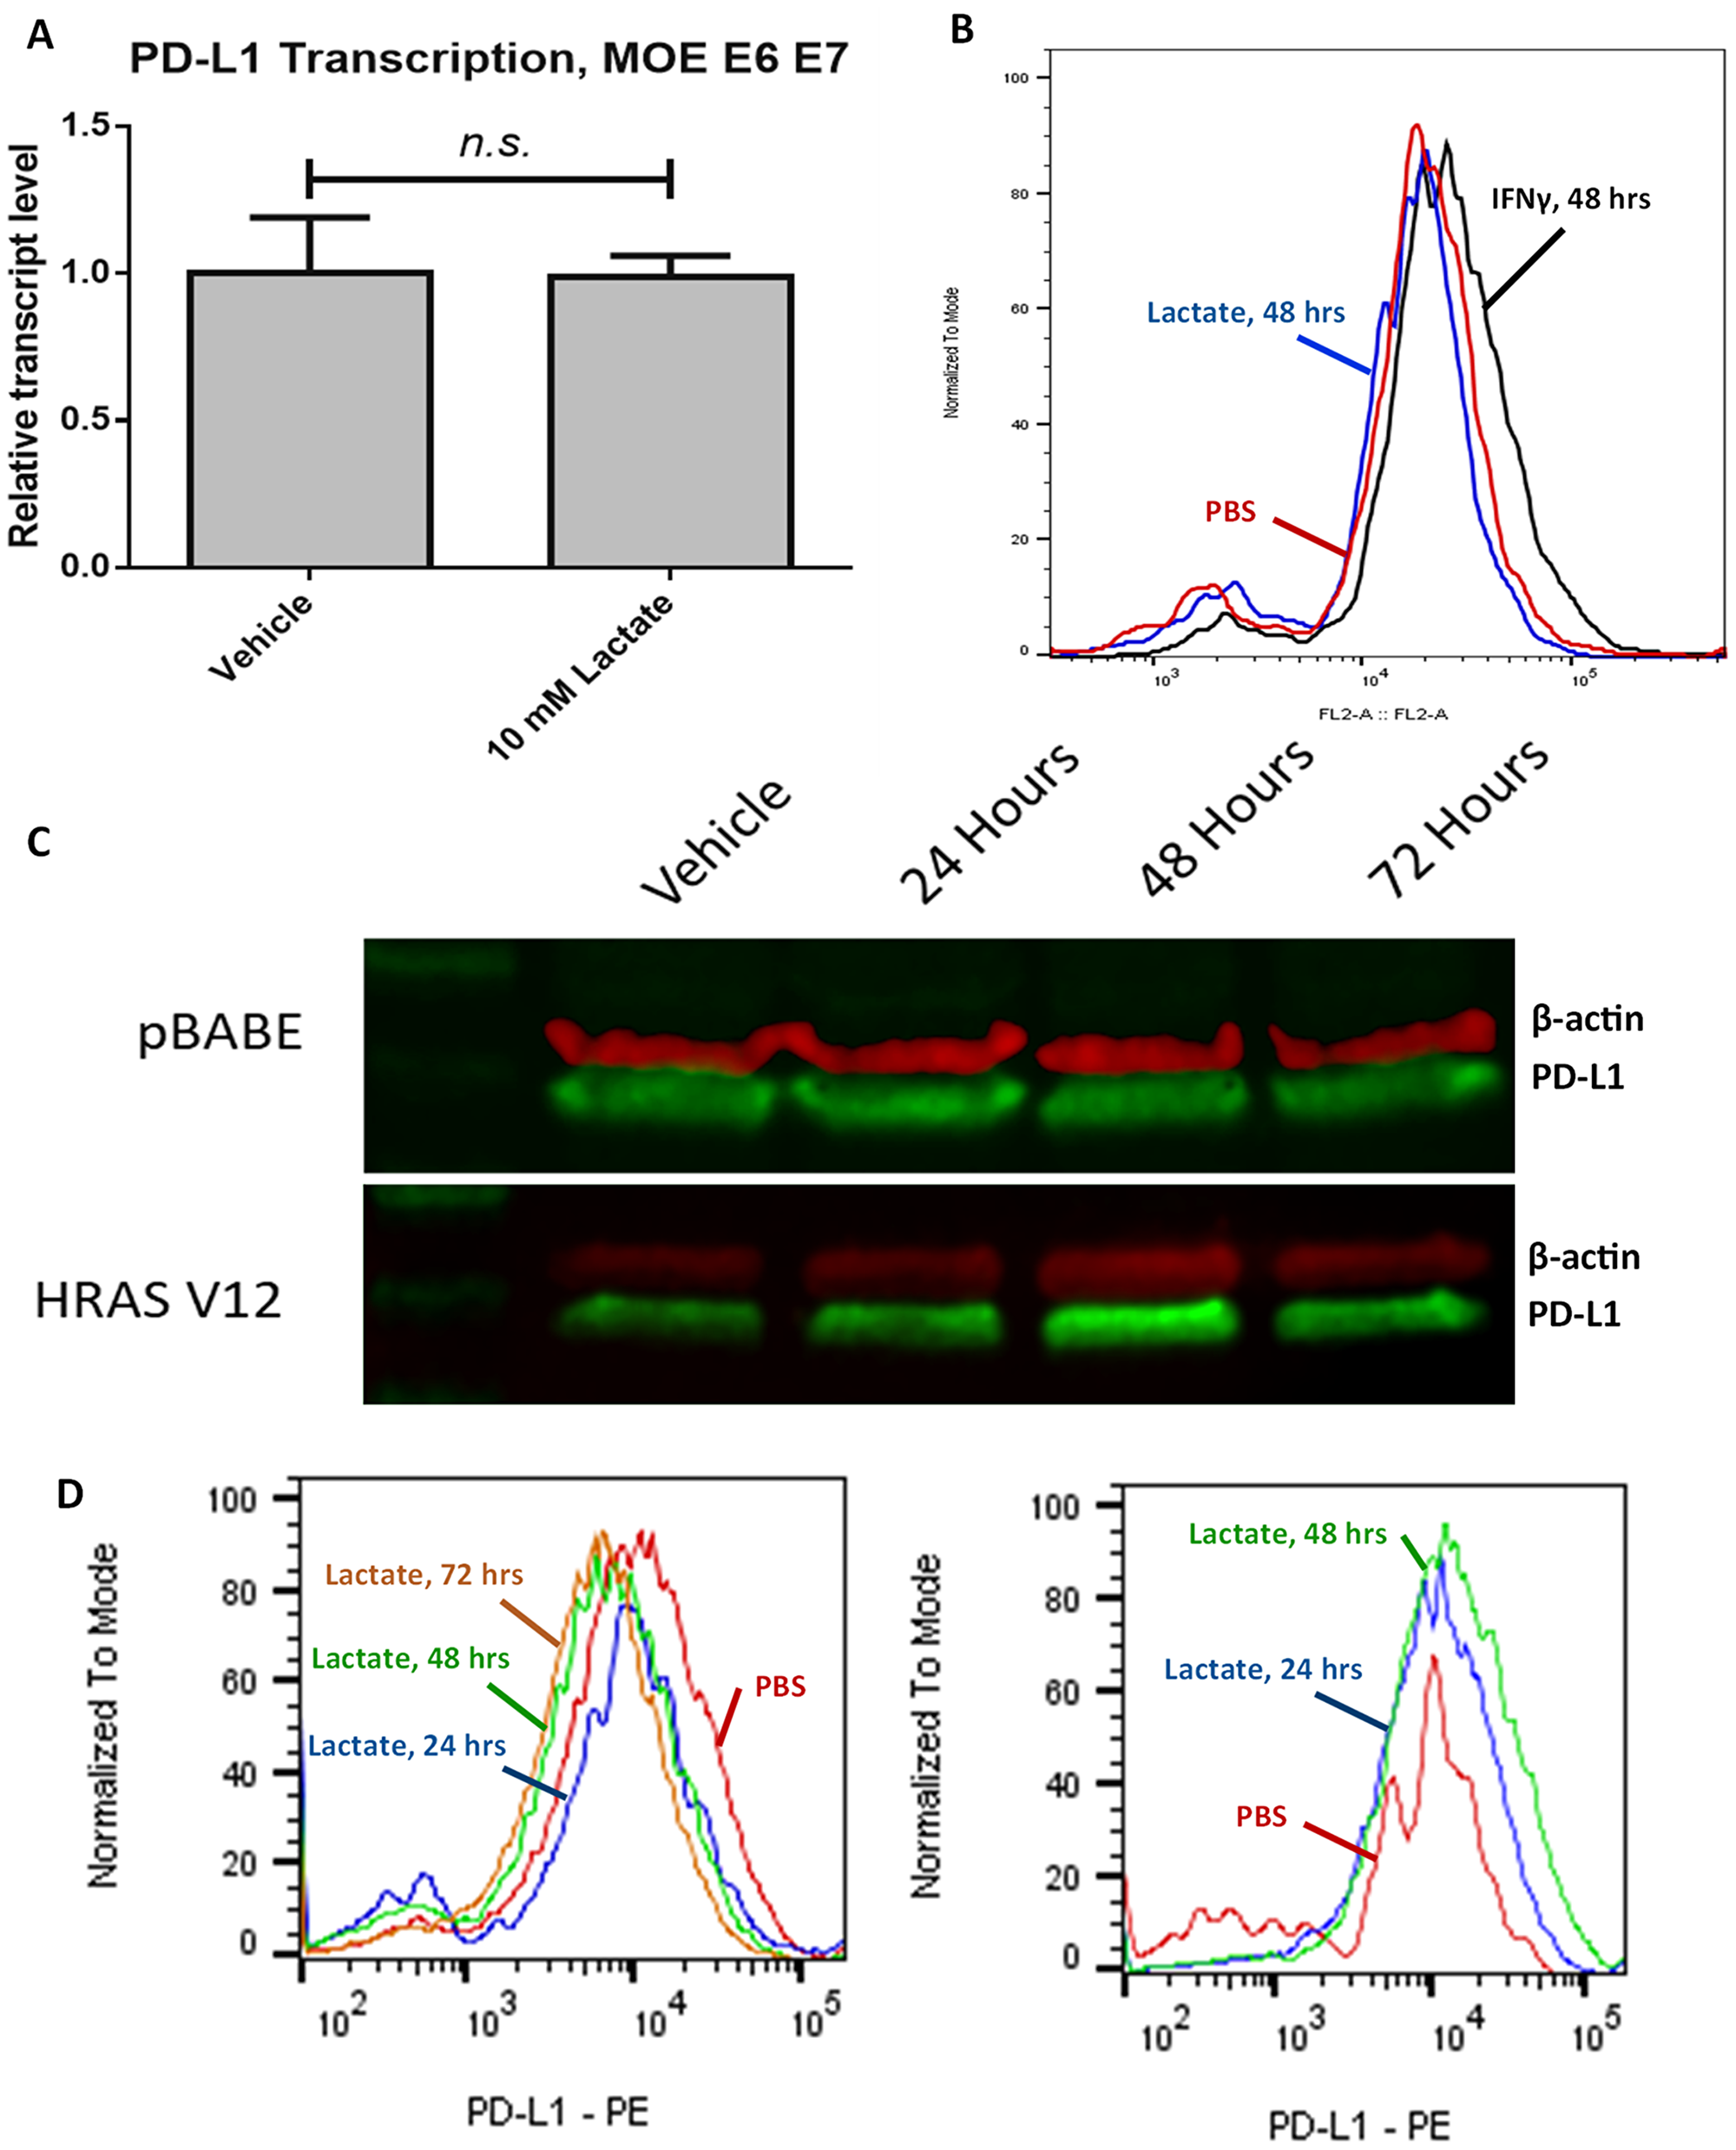 Lactate-induced expression of PD-L1 relies on HRASG12V expression.